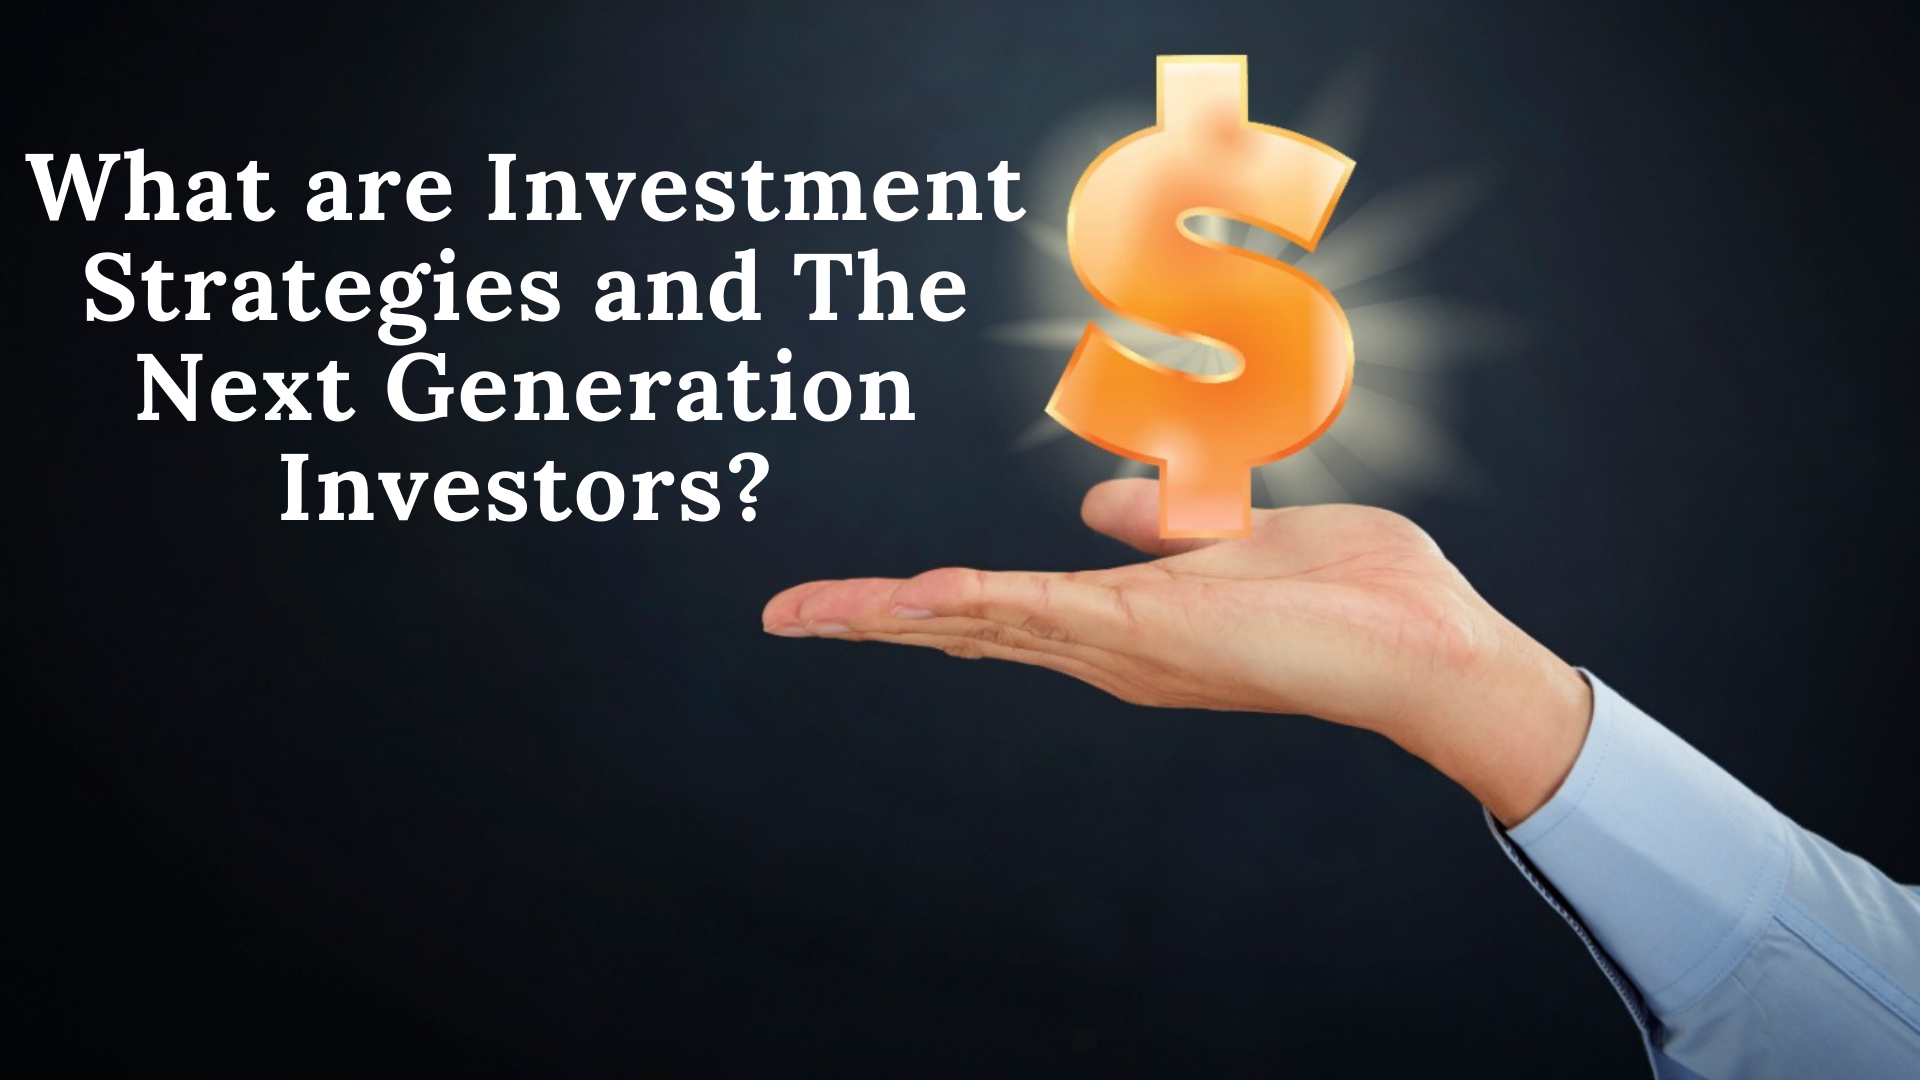 What are Investment Strategies and the Next Generation Investors?